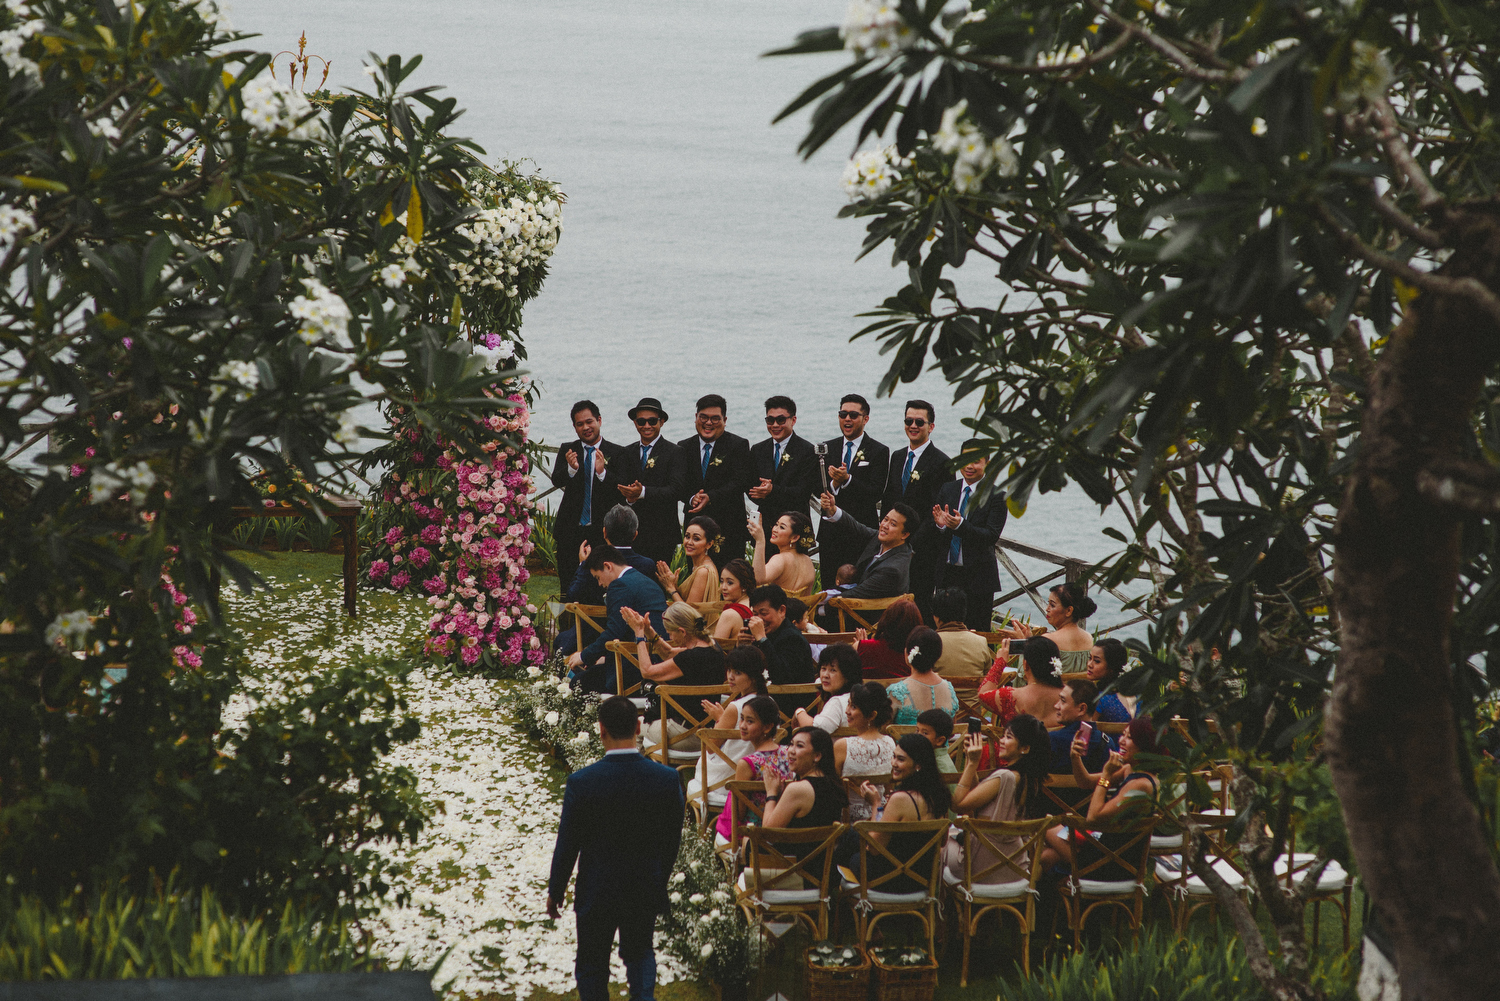 wedding-helise-risky-weddinginbali-khayanganestate-diktatphotography-baliweddingdestination-baliphotographer-62